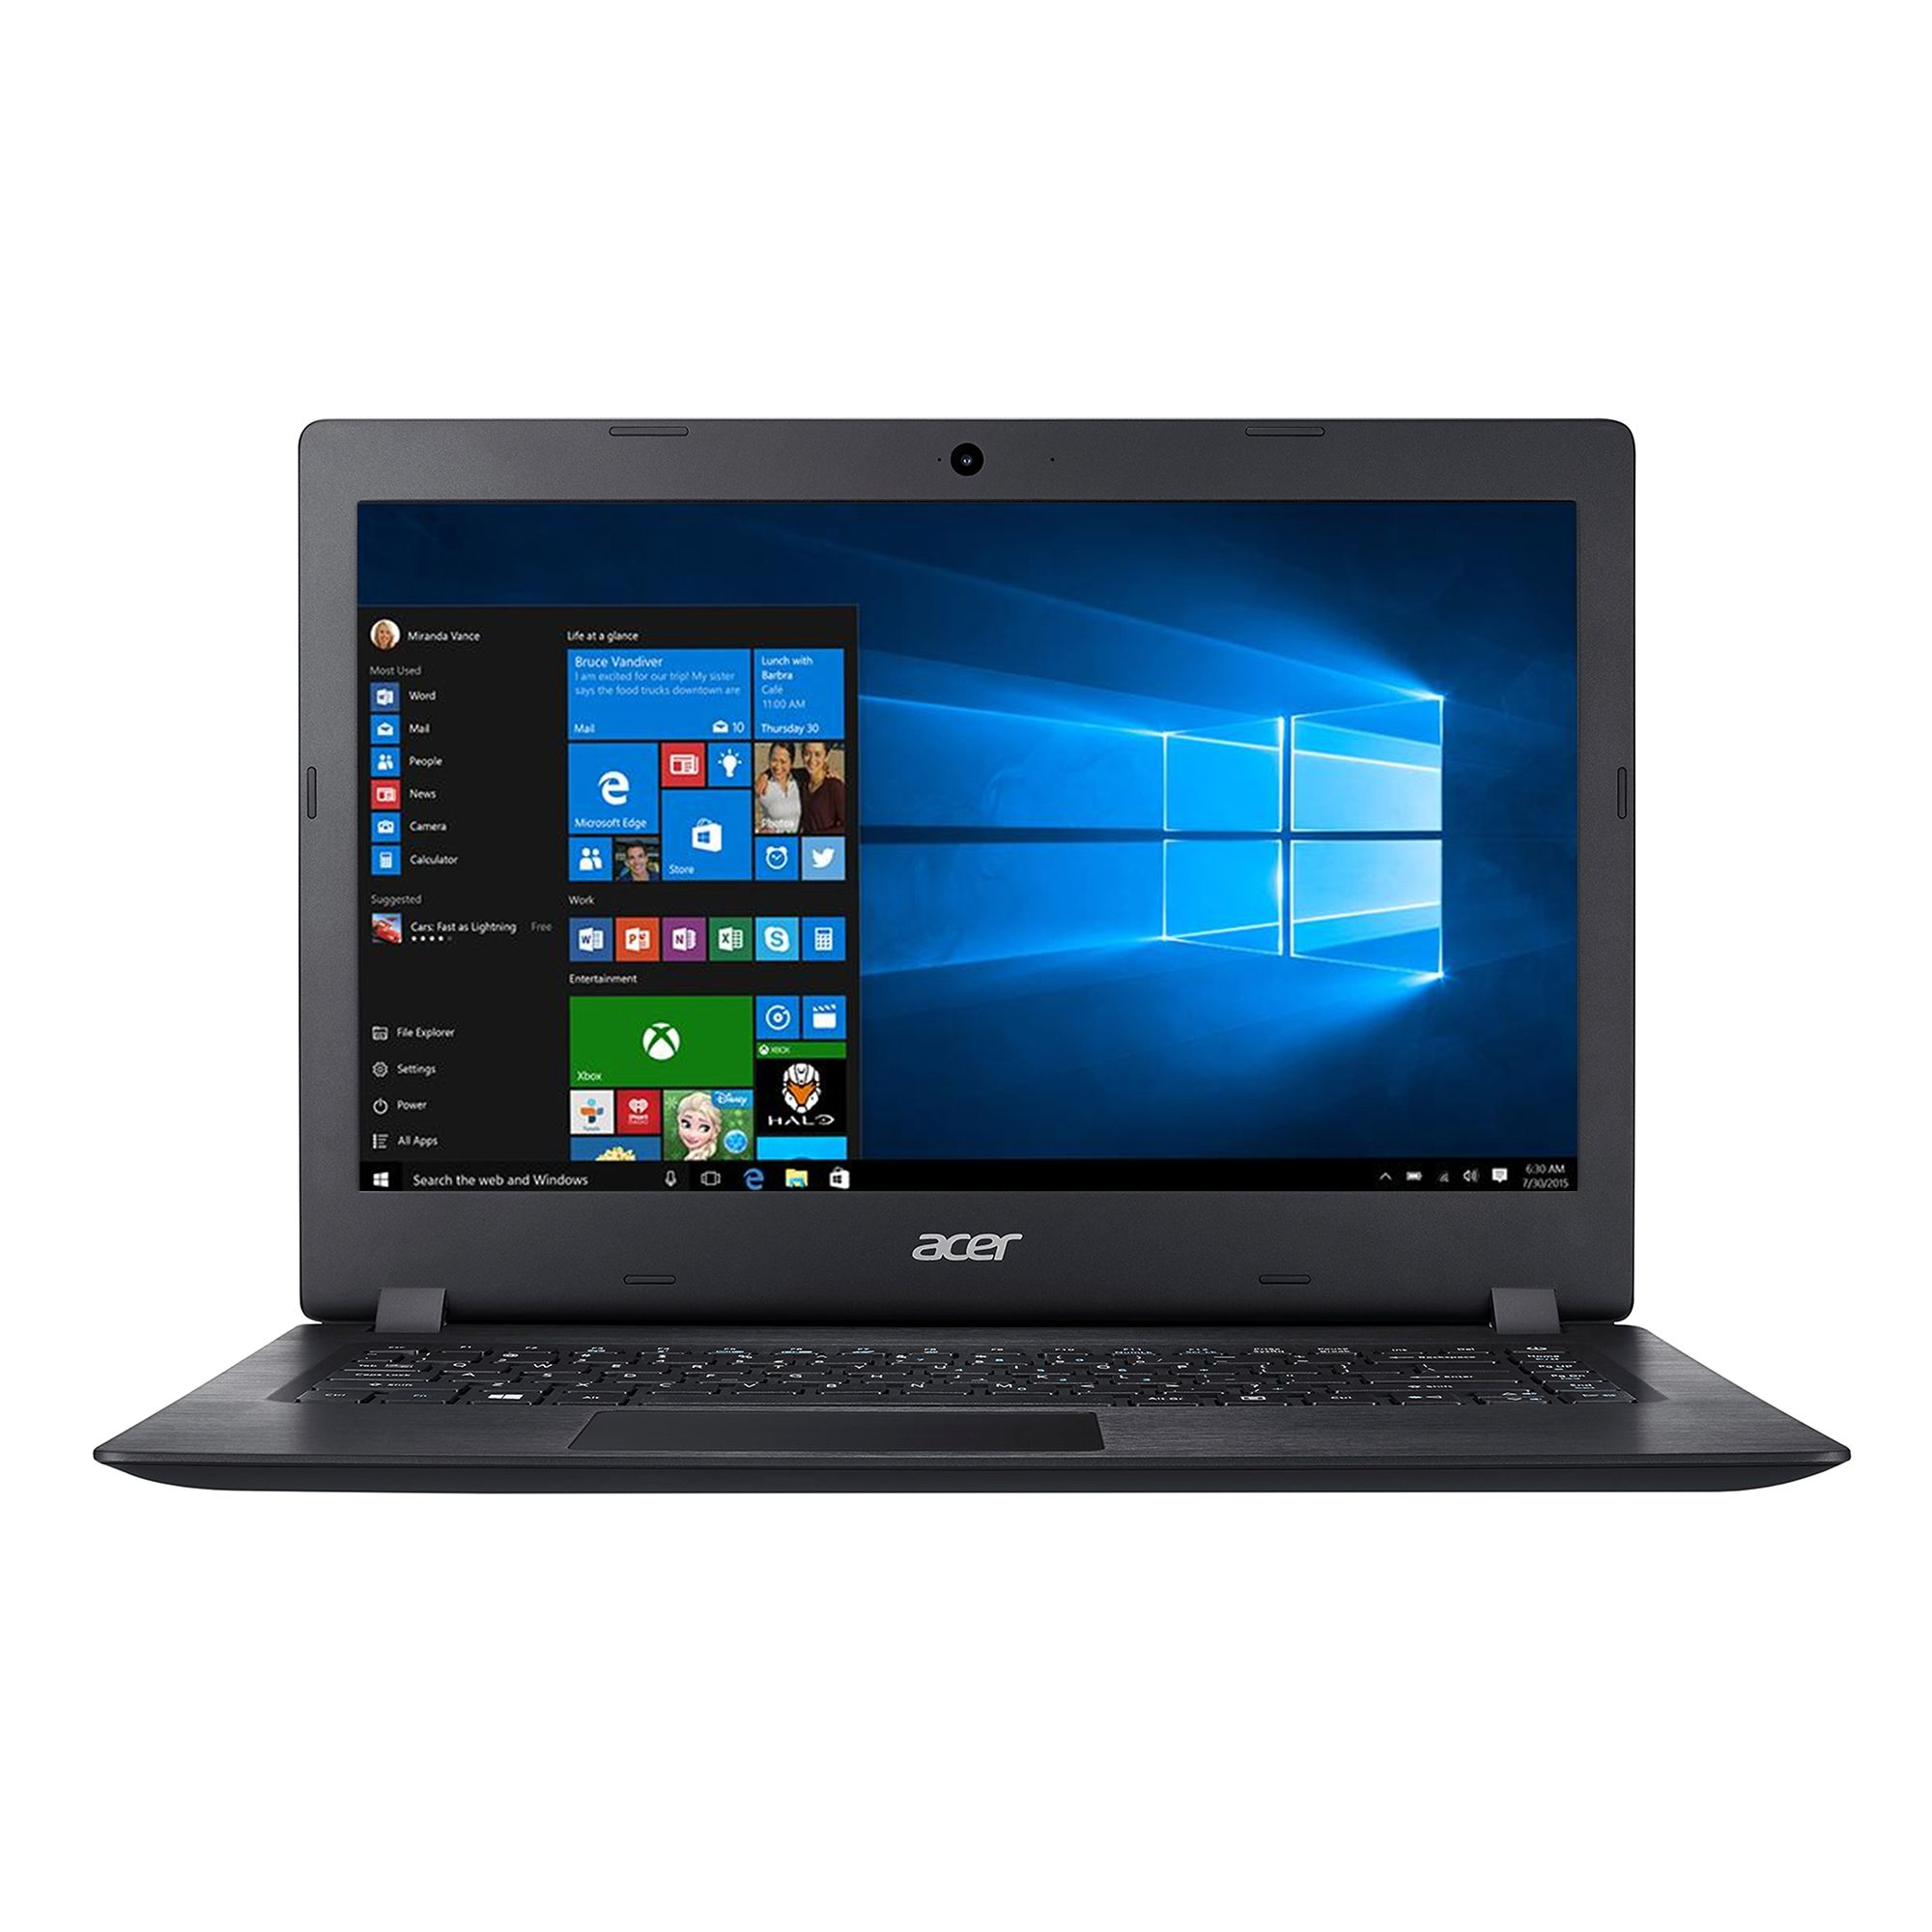 Notebook Acer Aspire A114 14 HD Intel Celeron N3450 RAM 4GB eMMC 64GB Windows 10 Negru